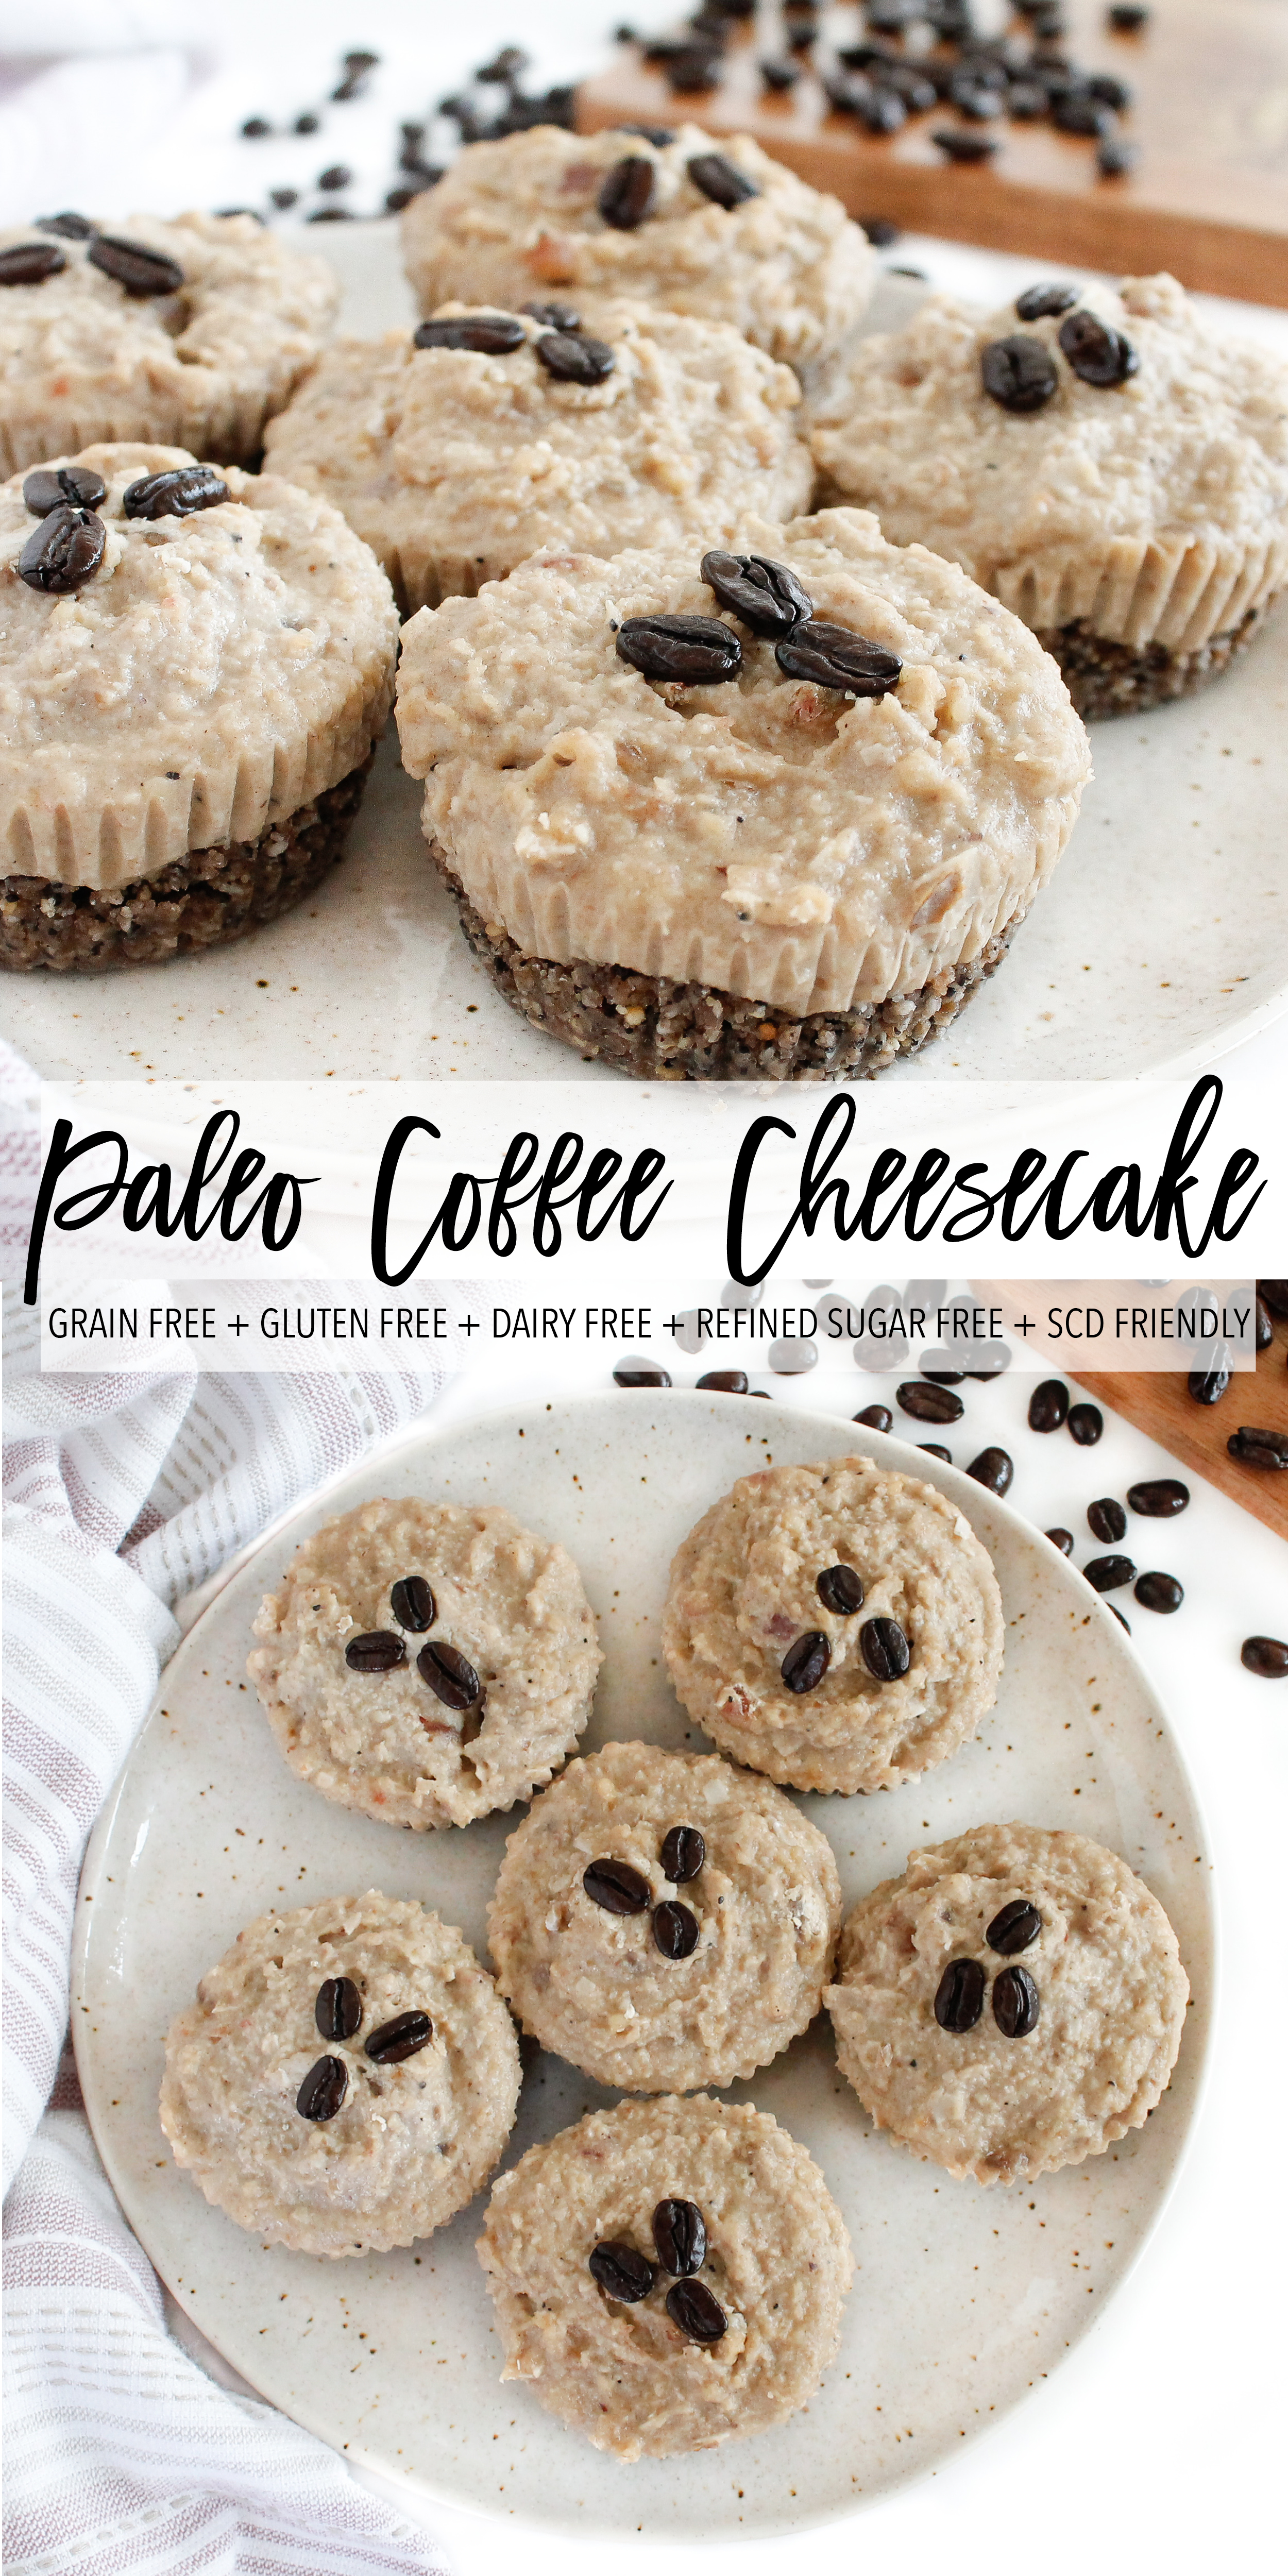 These vegan and paleo coffee cheesecake bites are the perfect healthy dessert option! They're grain free, gluten free, dairy free, refined sugar free and Specific Carbohydrate Diet friendly. And what's better than dairy free cheesecake and coffee!? Click through to try the recipe for yourself! #vegandessert #specificcarbohydratediet #vegancheesecake #paleo